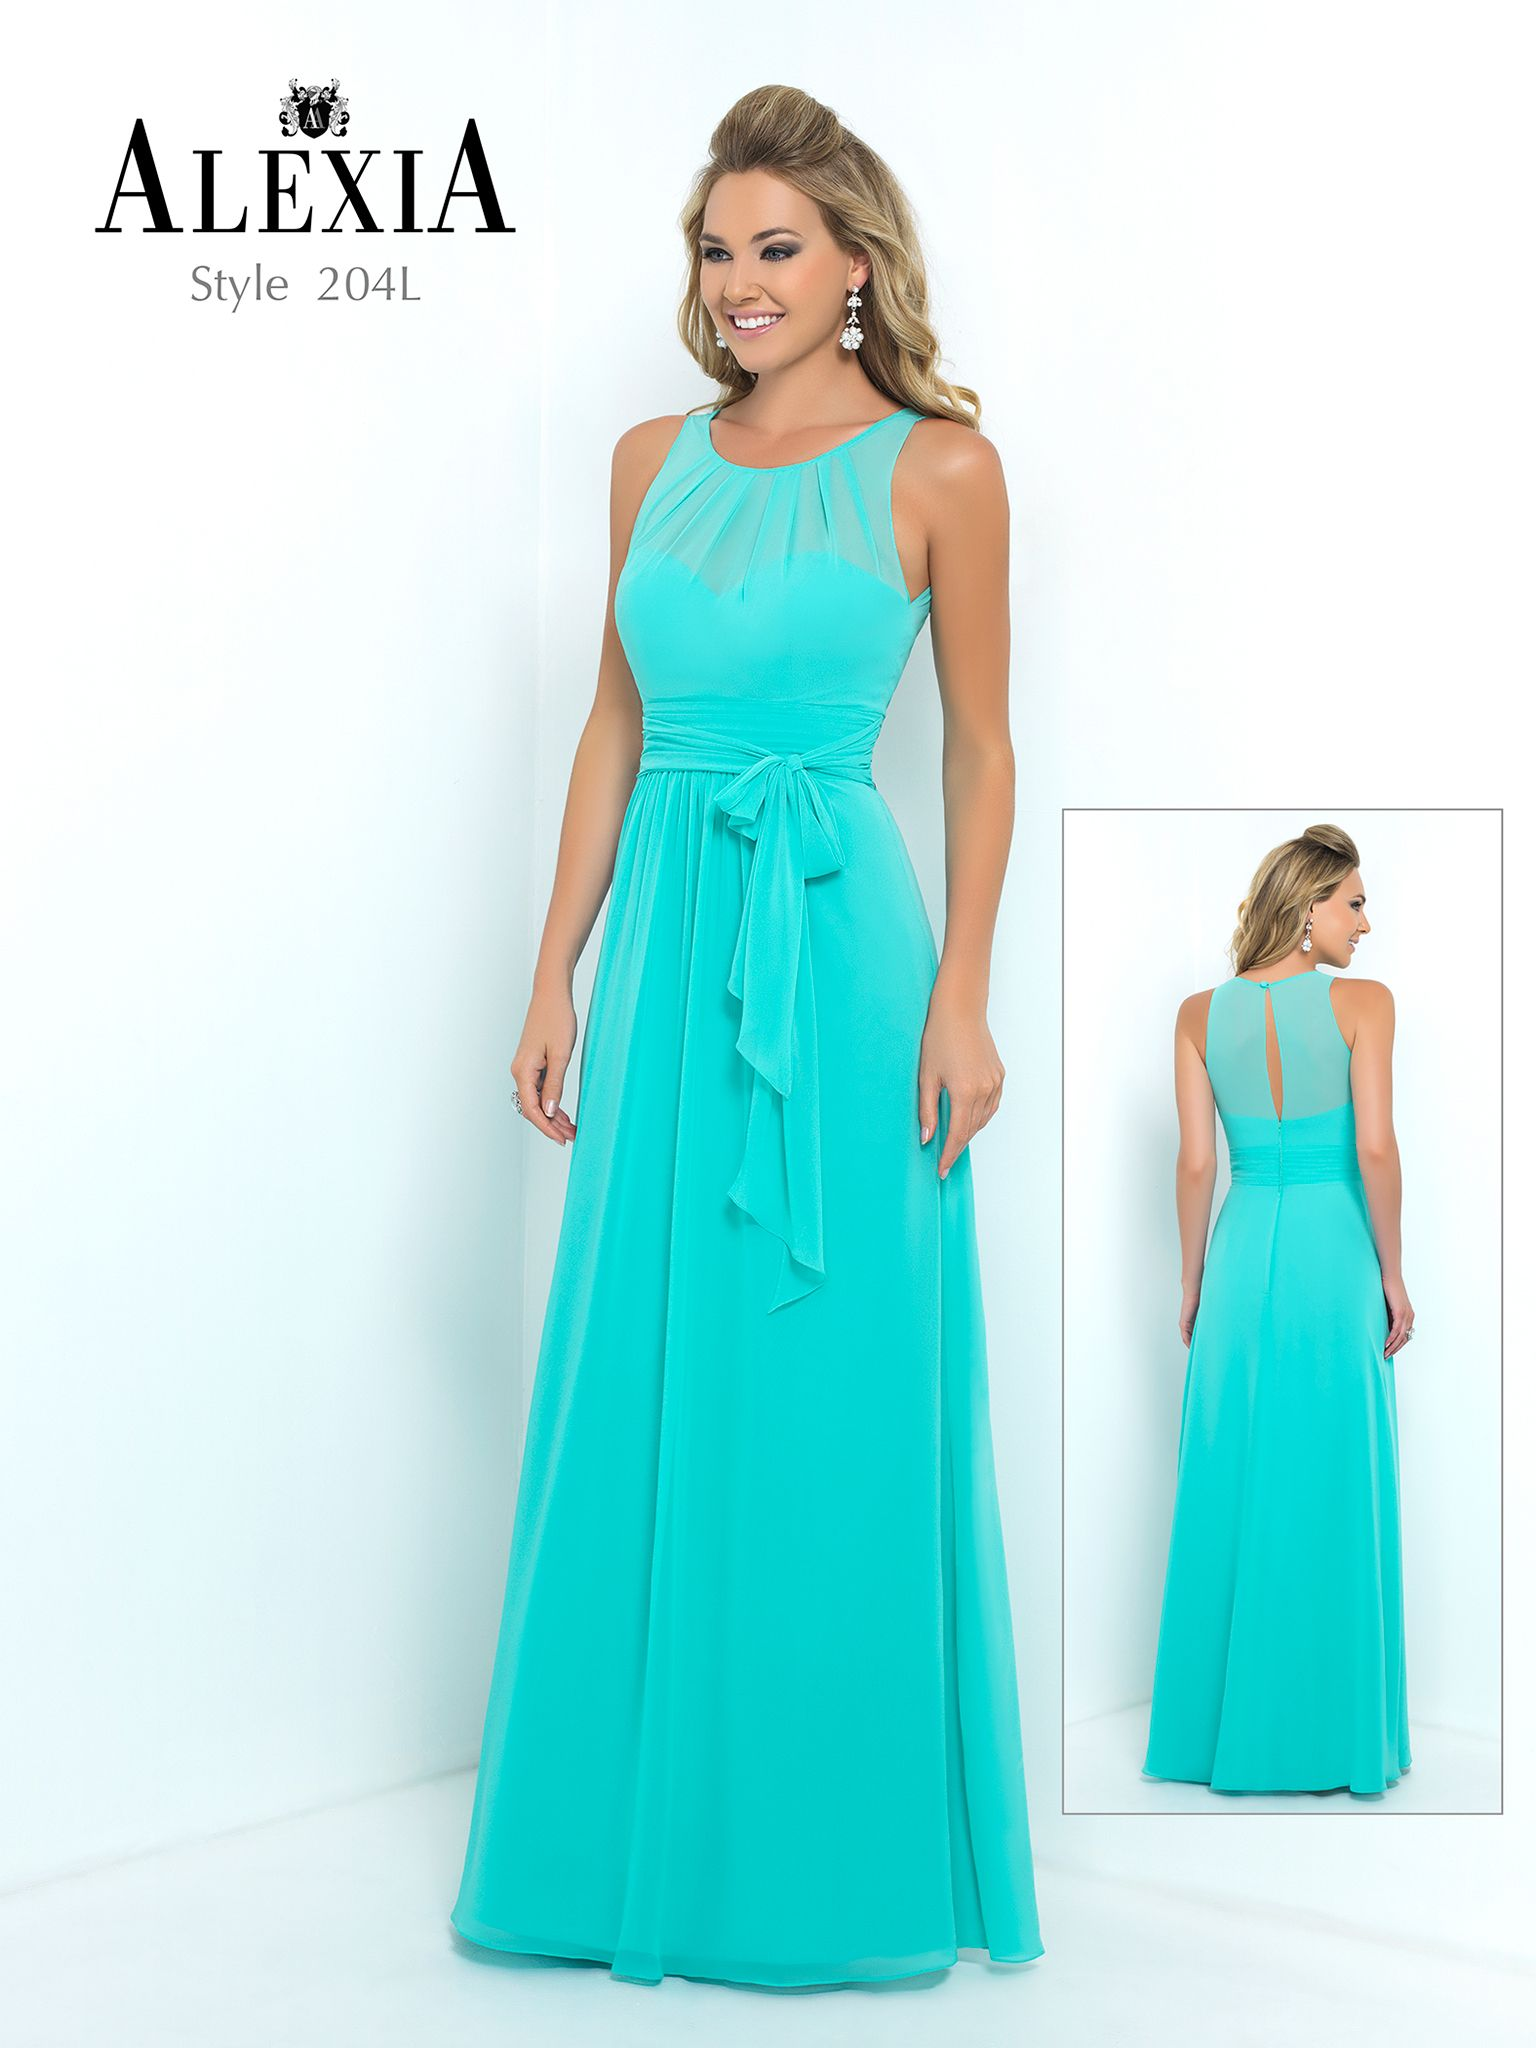 204l from alexia designs bridesmaid bridesmaid dresses alexia designs style long version of bella chiffon bridesmaid dress with pleated waist band tiered bodice detail pleated bodice ombrellifo Choice Image